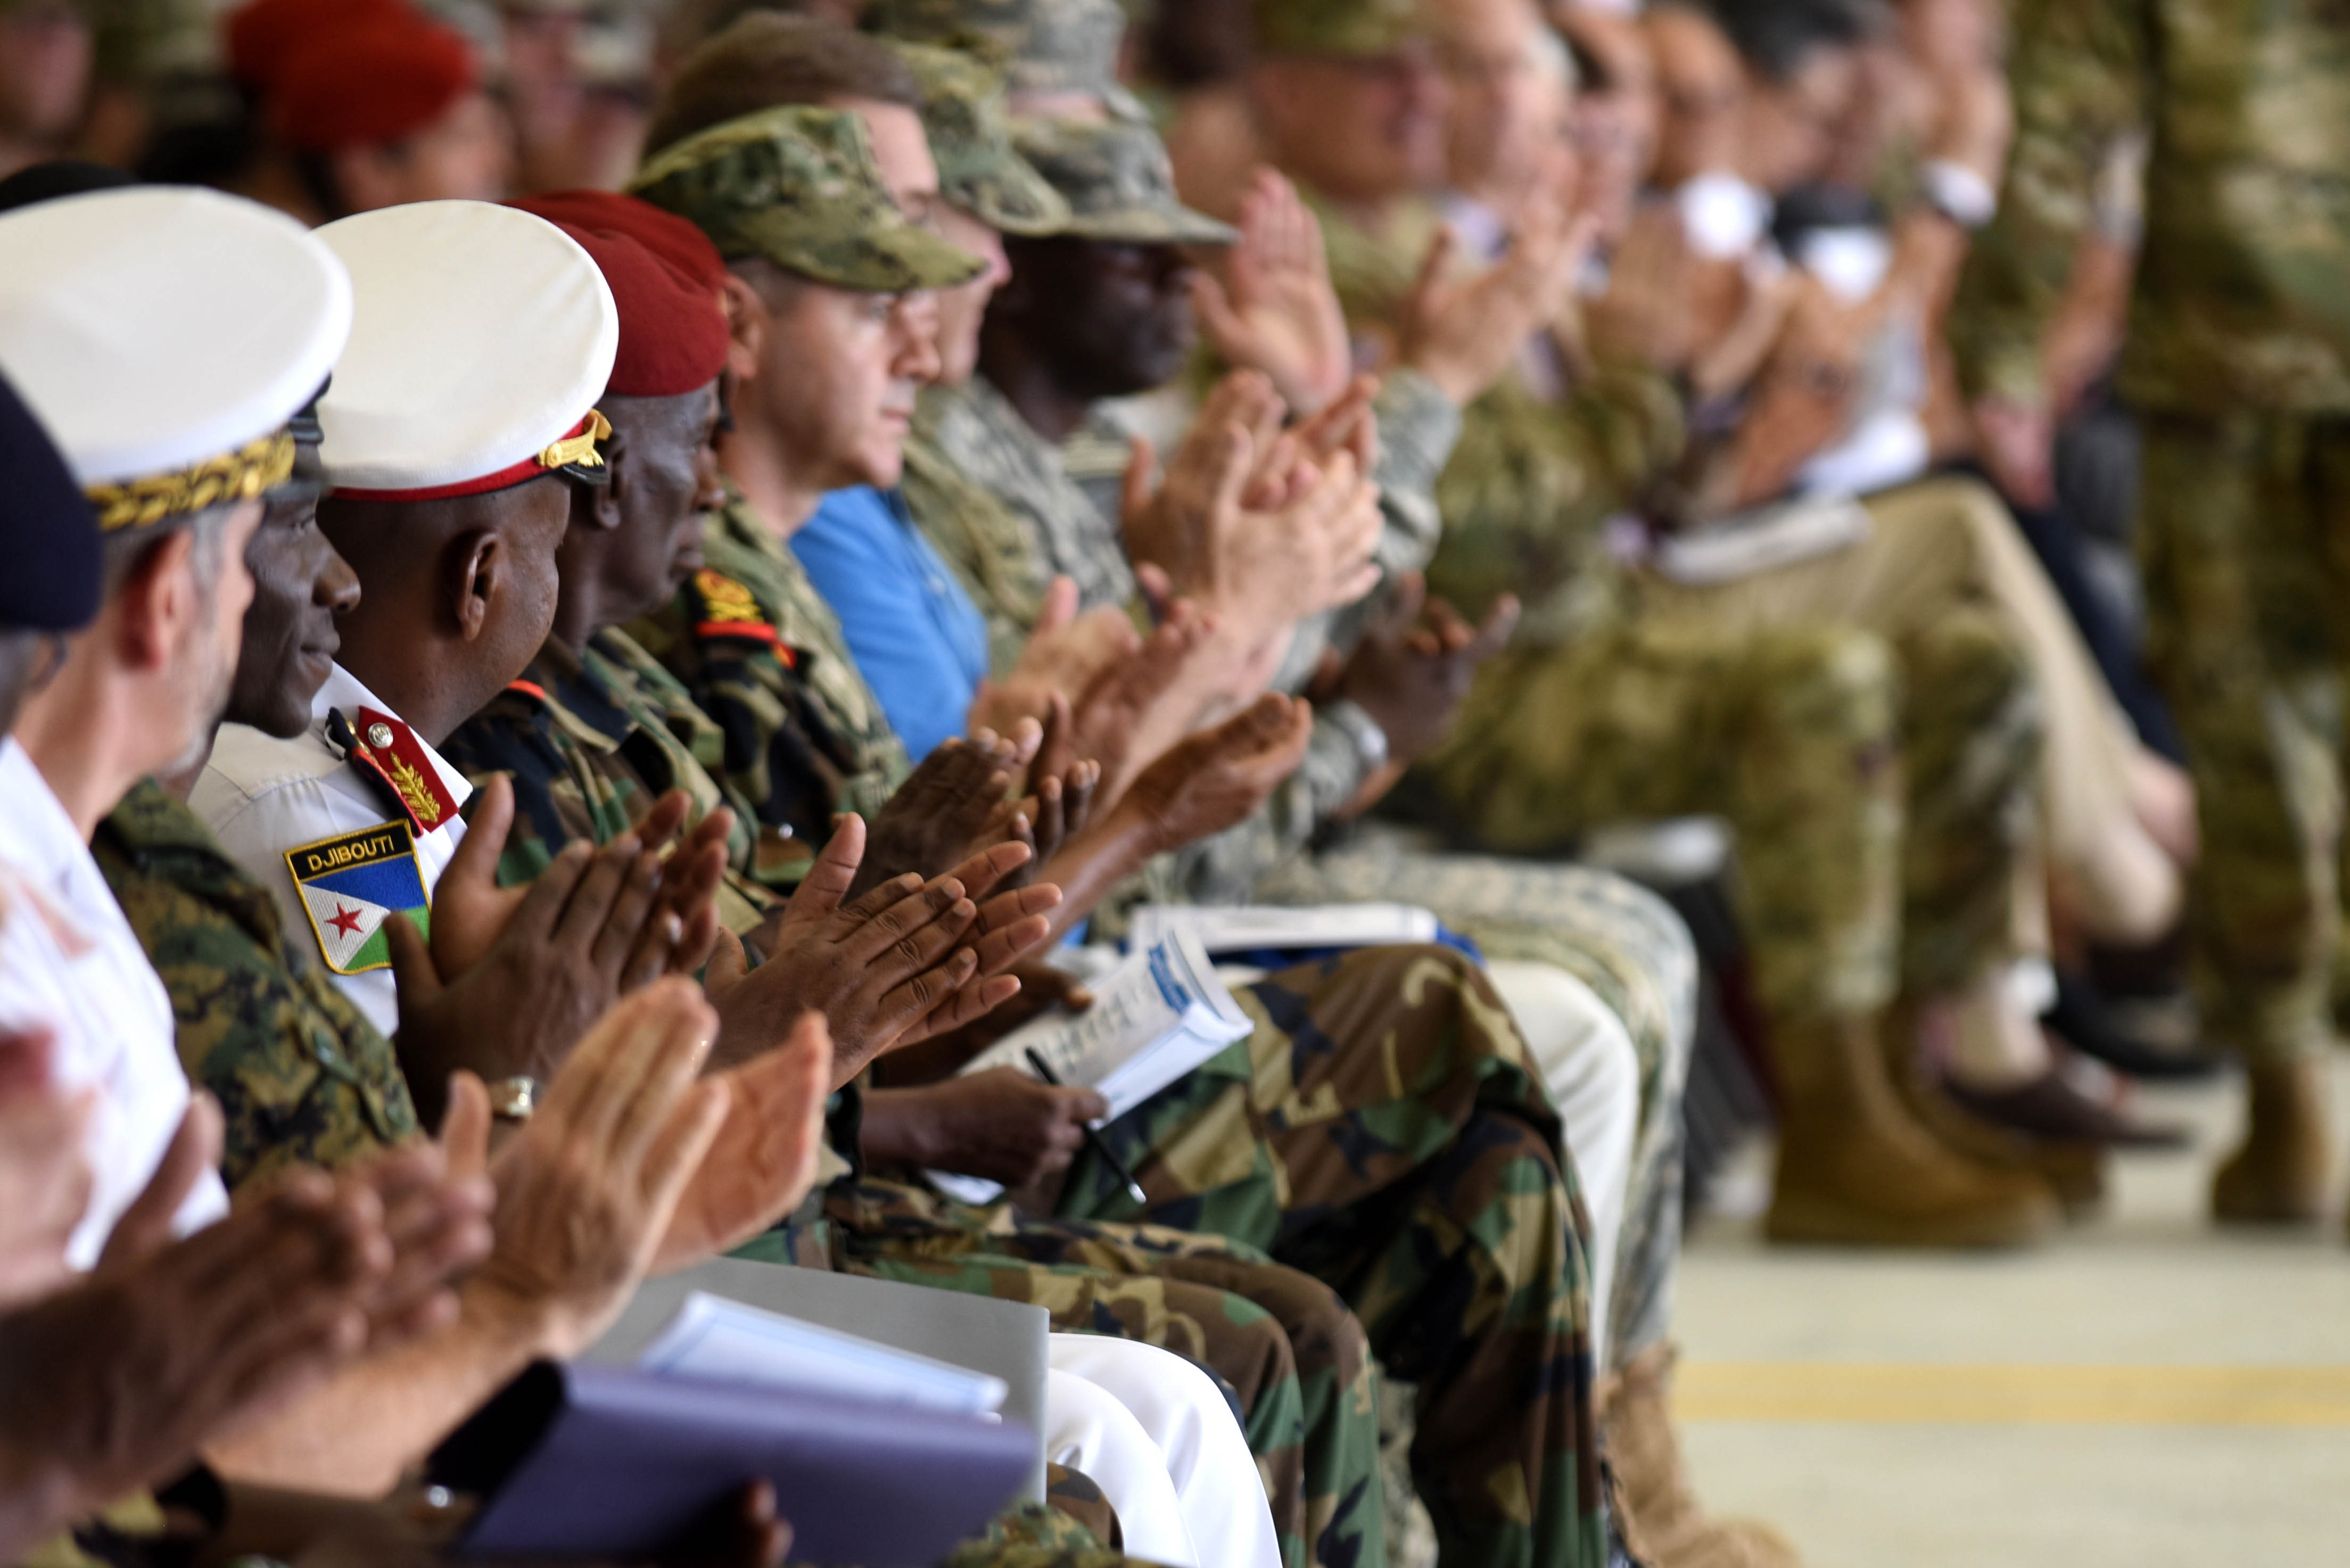 Service members, diplomats and multi-national guests applaud during a change of command ceremony April 13, 2016, at Camp Lemonnier, Djibouti. Sonntag is now in command of CJTF-HOA and responsible for its impact on the East African region. (U.S. Air Force photo by Staff Sgt. Kate Thornton)